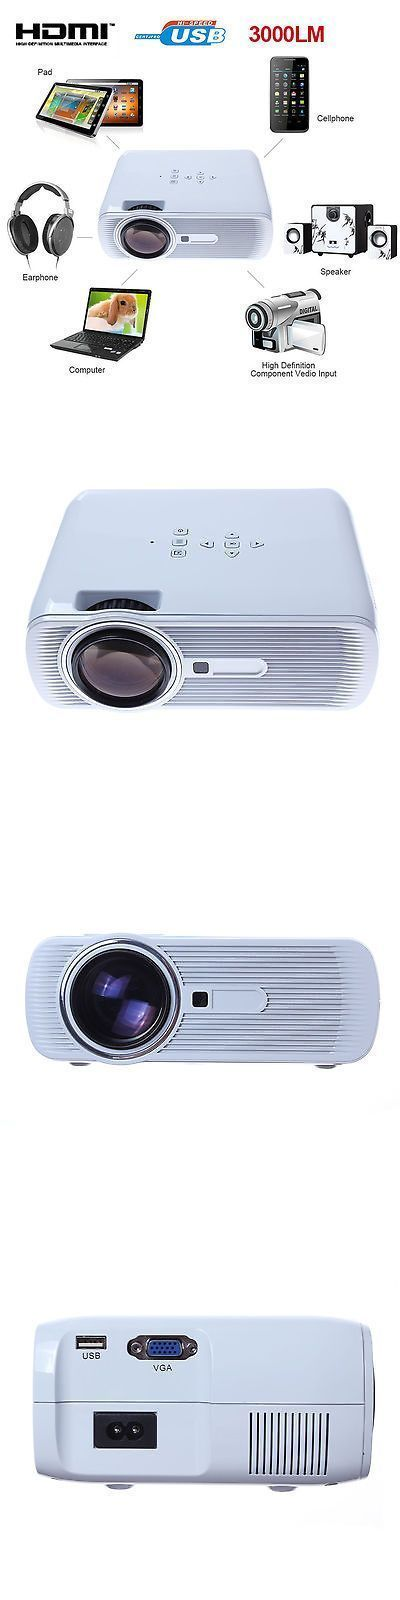 Home Theater Projectors: 3D 1080P 3000 Lumens Projector Home Theater Cinema Led/Lcd Hdmi Vga Av Tv Vga Hd BUY IT NOW ONLY: $101.5 #hometheatreprojectors